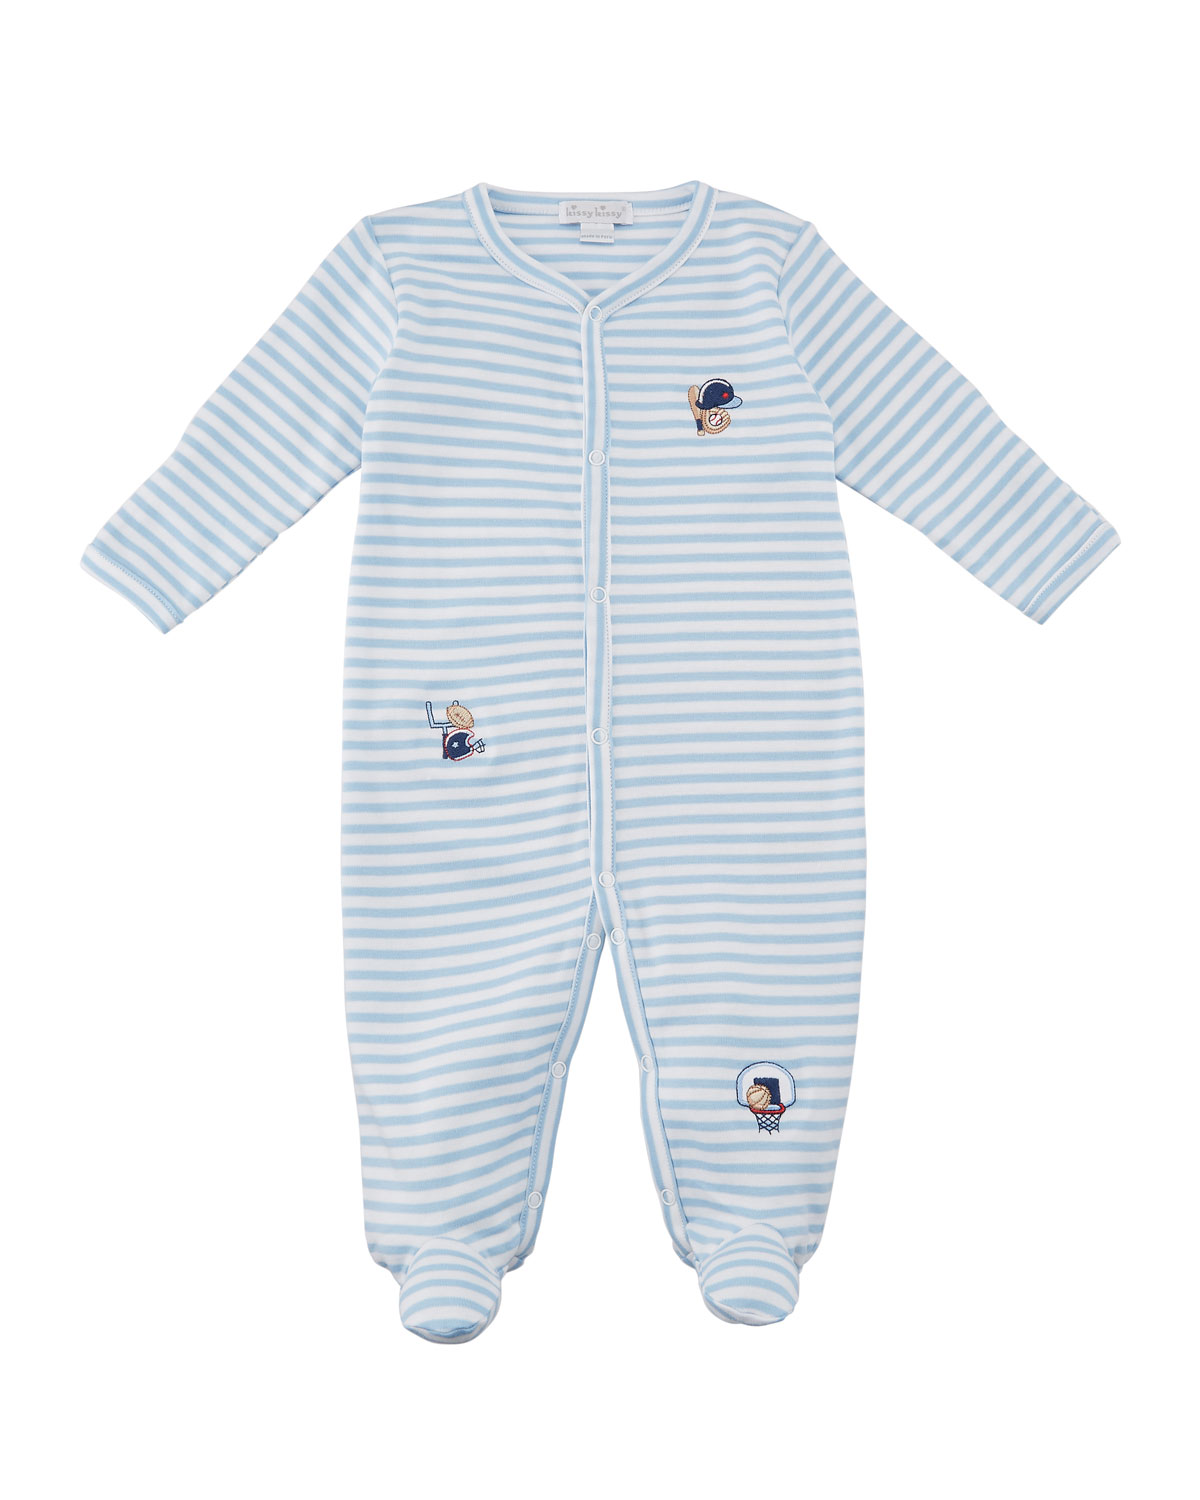 Fall Sports Striped Embroidered Footie Playsuit, Size Newborn-9M